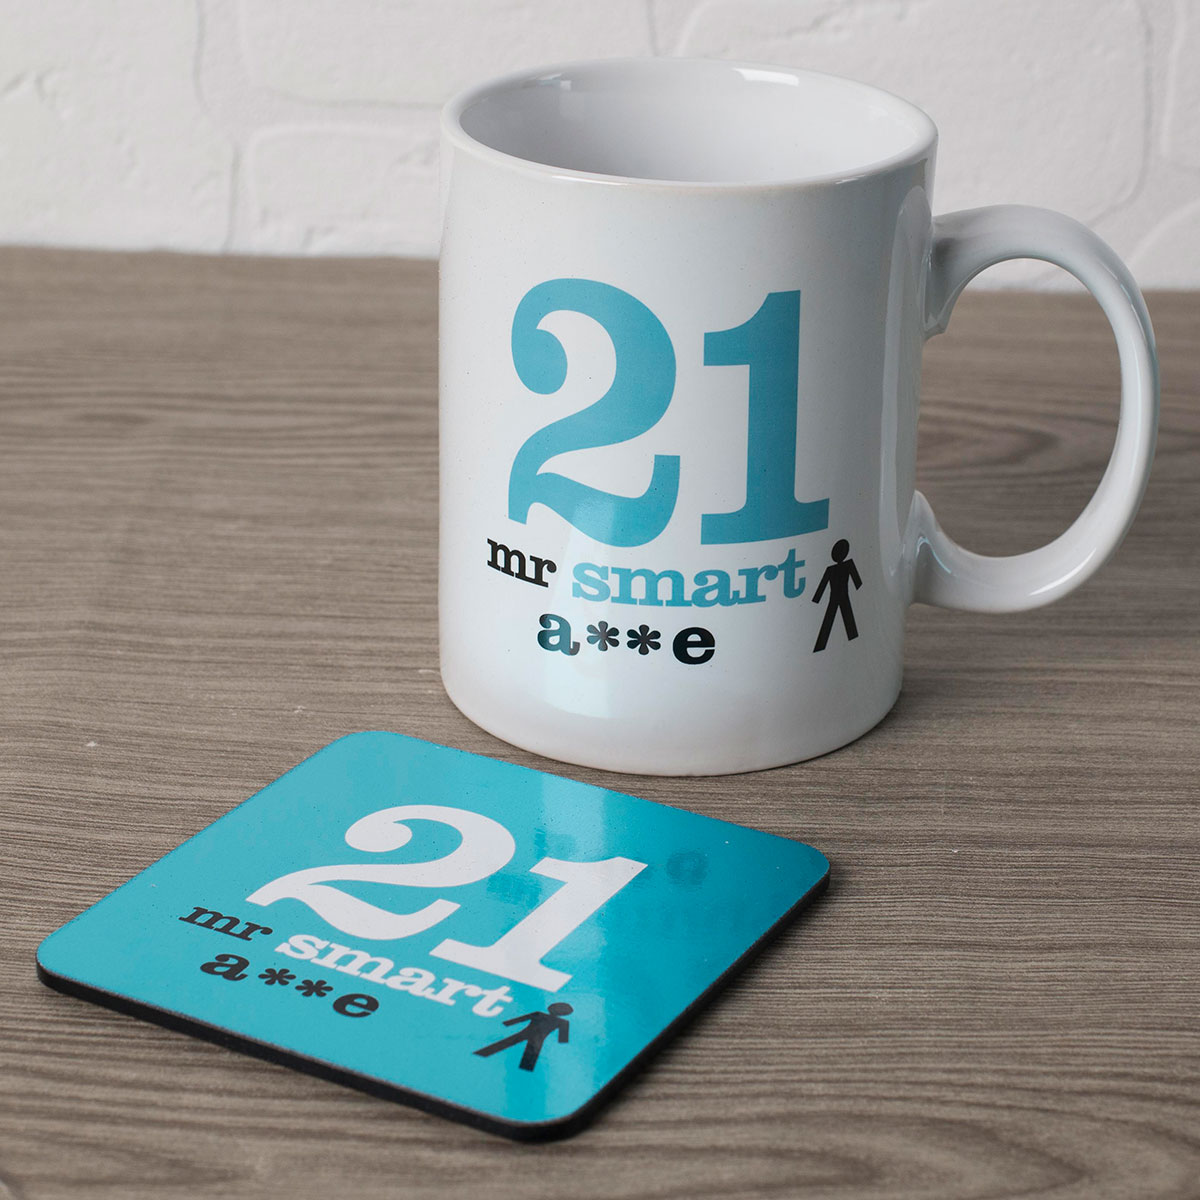 21st Birthday Mug And Coaster Set - Smart - 21st gift